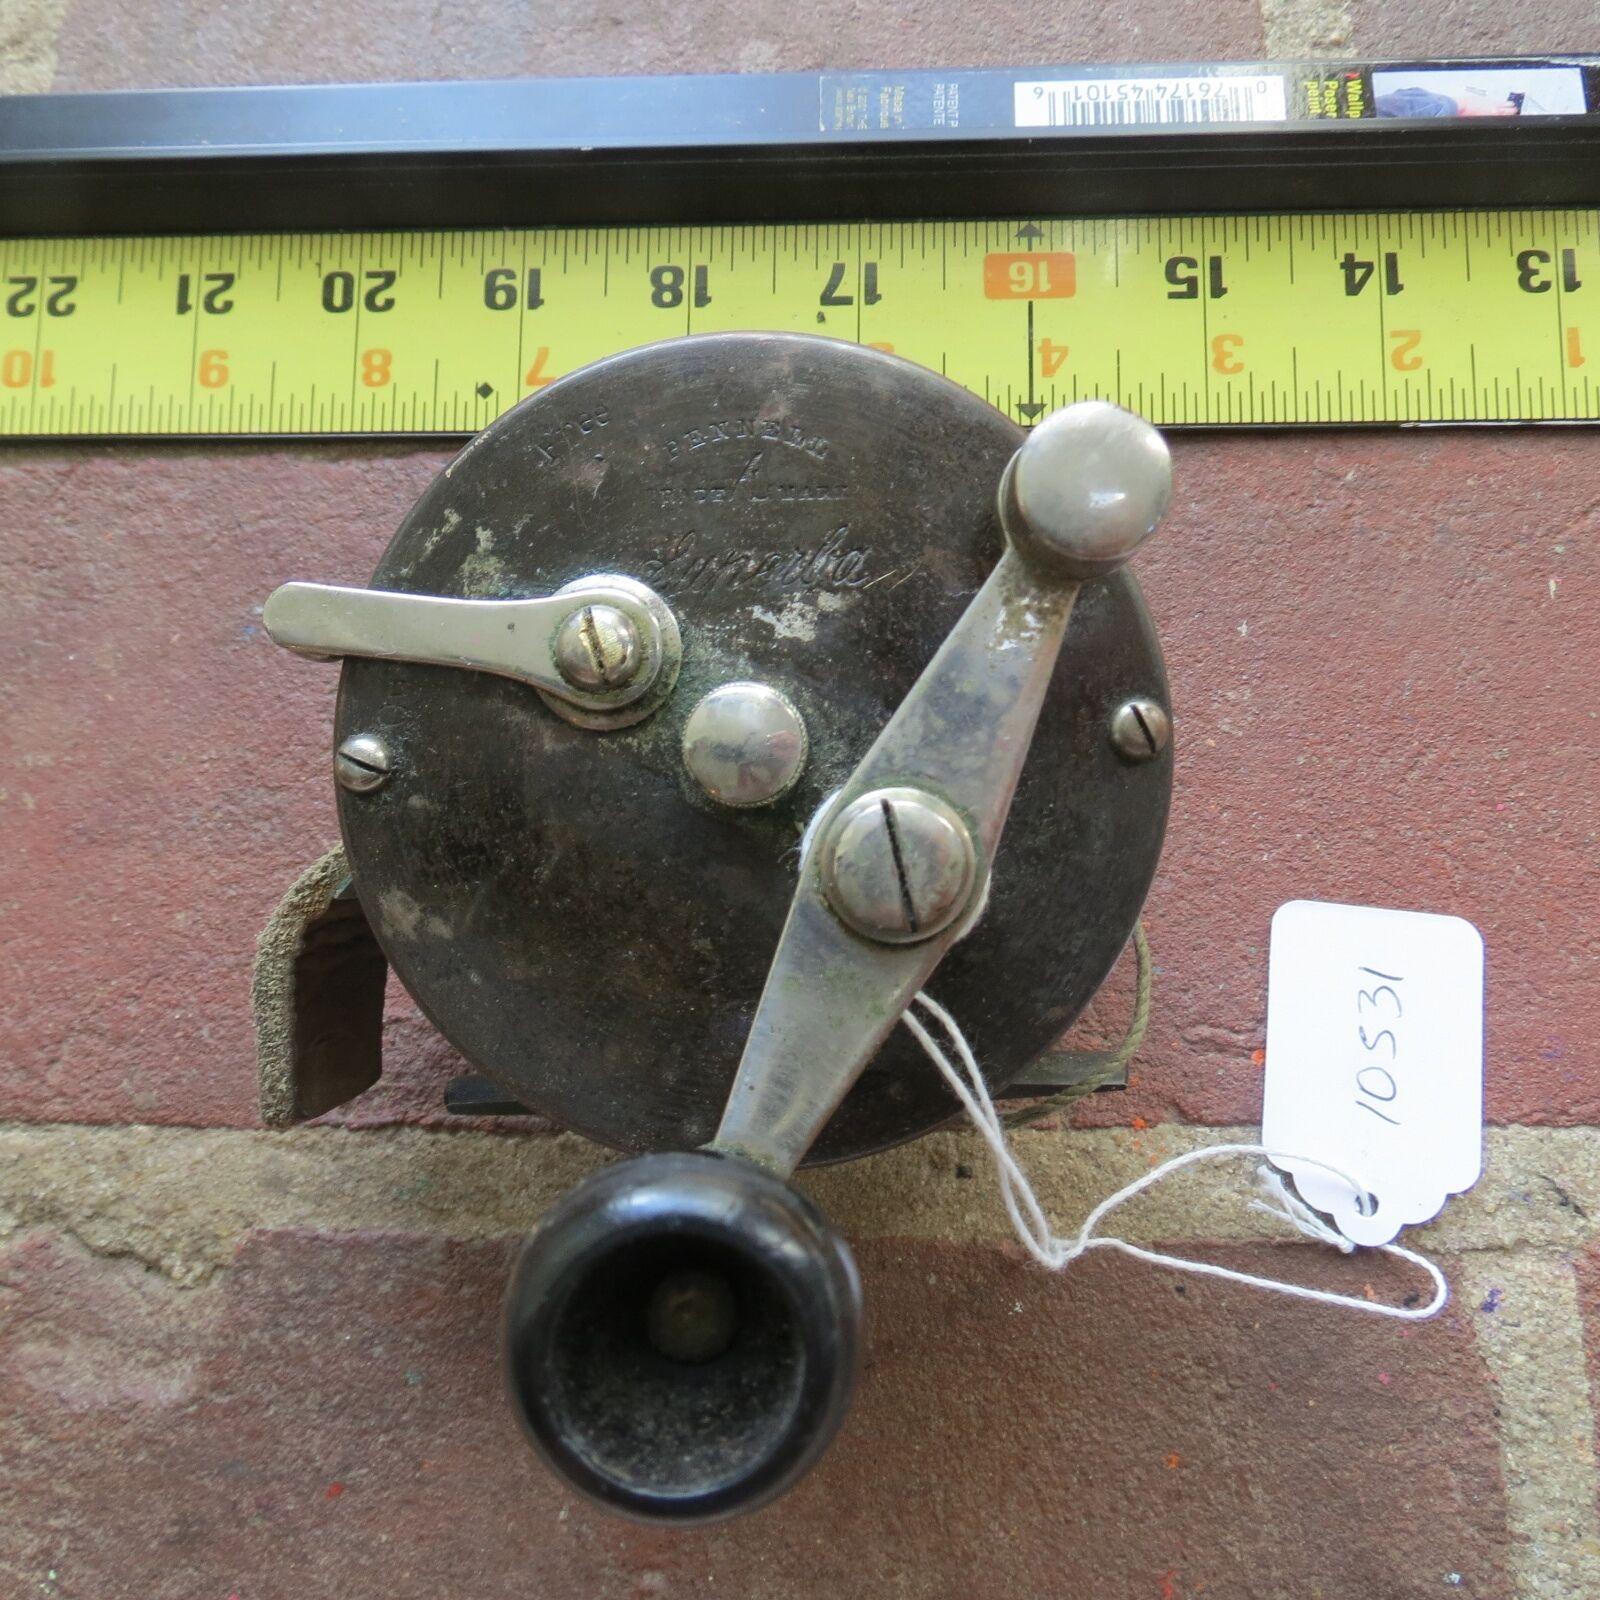 Vintage Anfang der 1900s Pennell Superba 200 Angelrolle (lot)